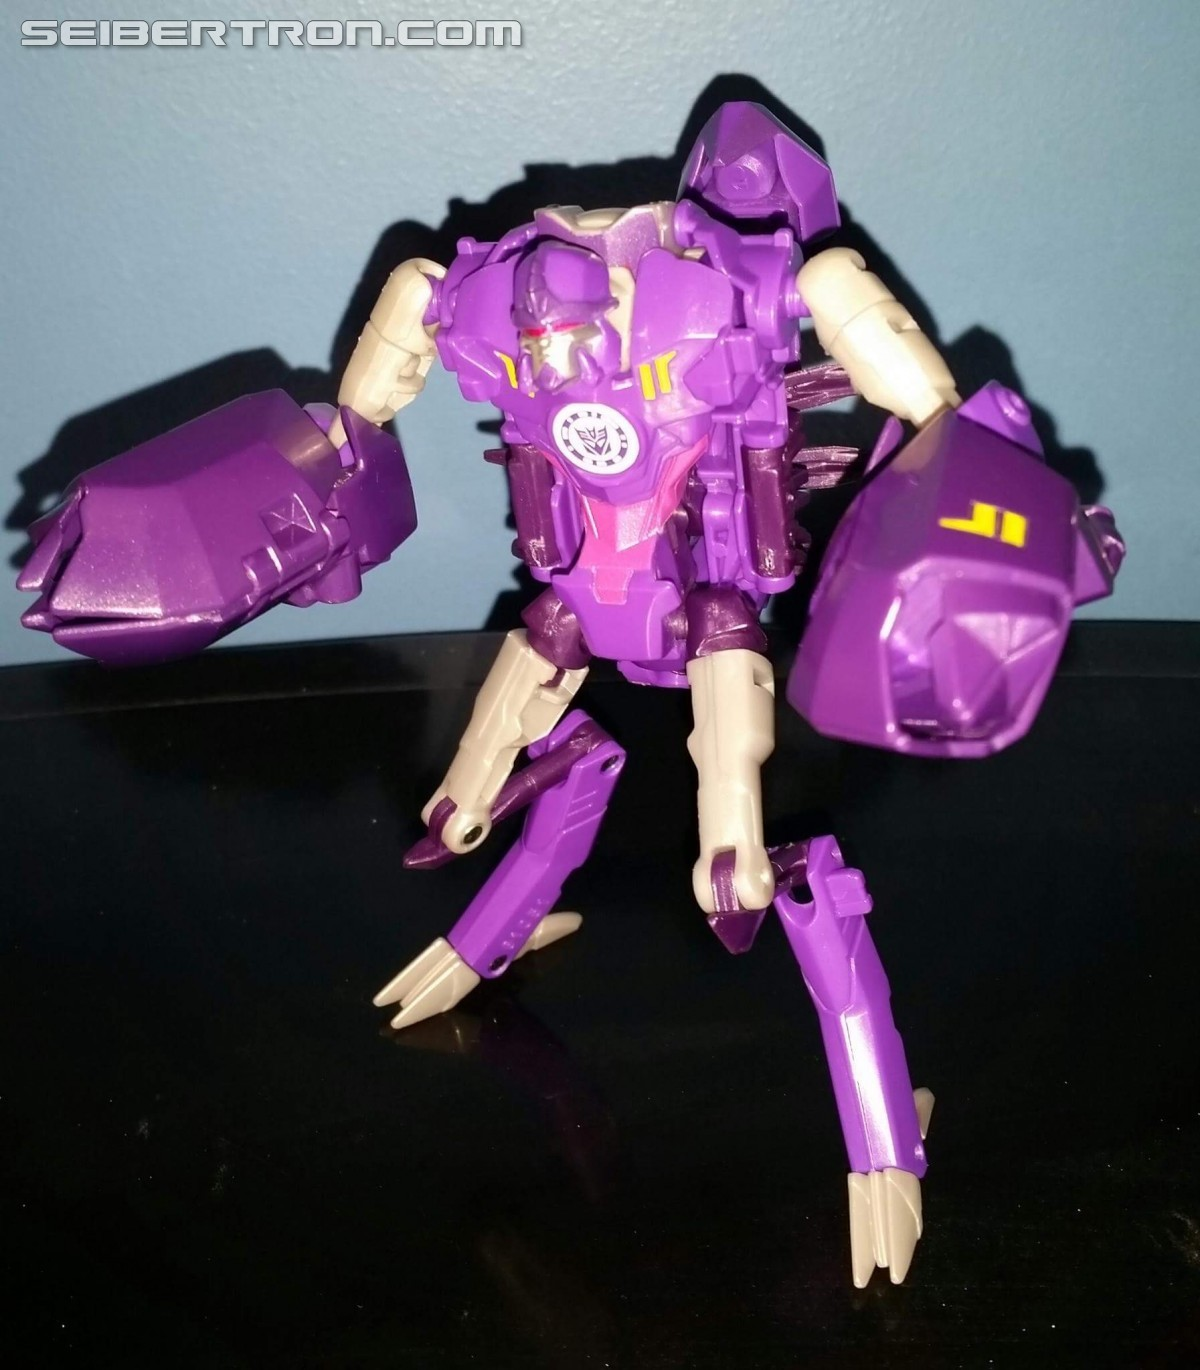 Transformers News: A Better Look at New Transformers Robots in Disguise Figure Paralon